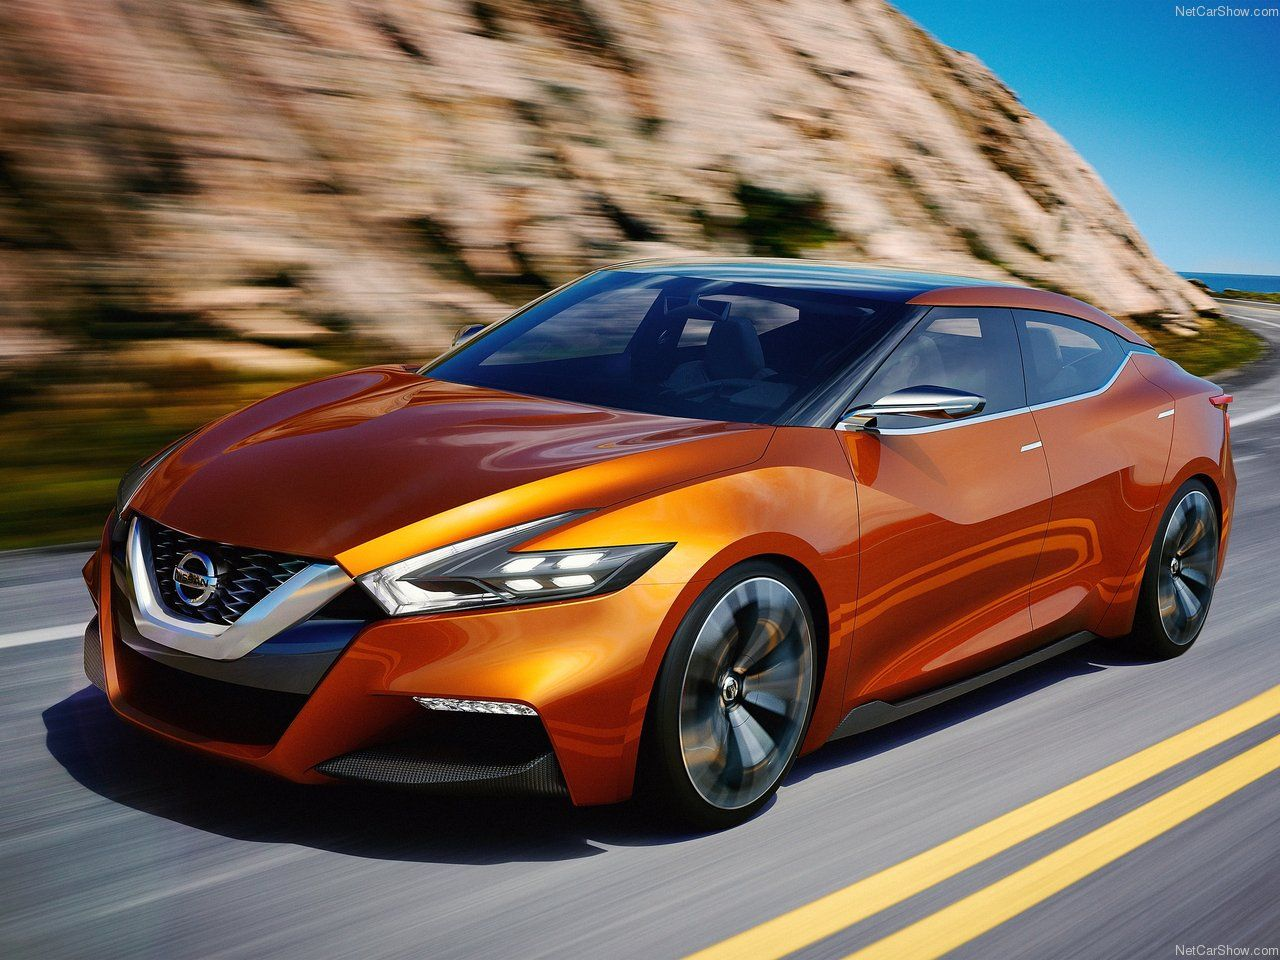 43 best nissan maxima images on pinterest nissan maxima cars and dream cars